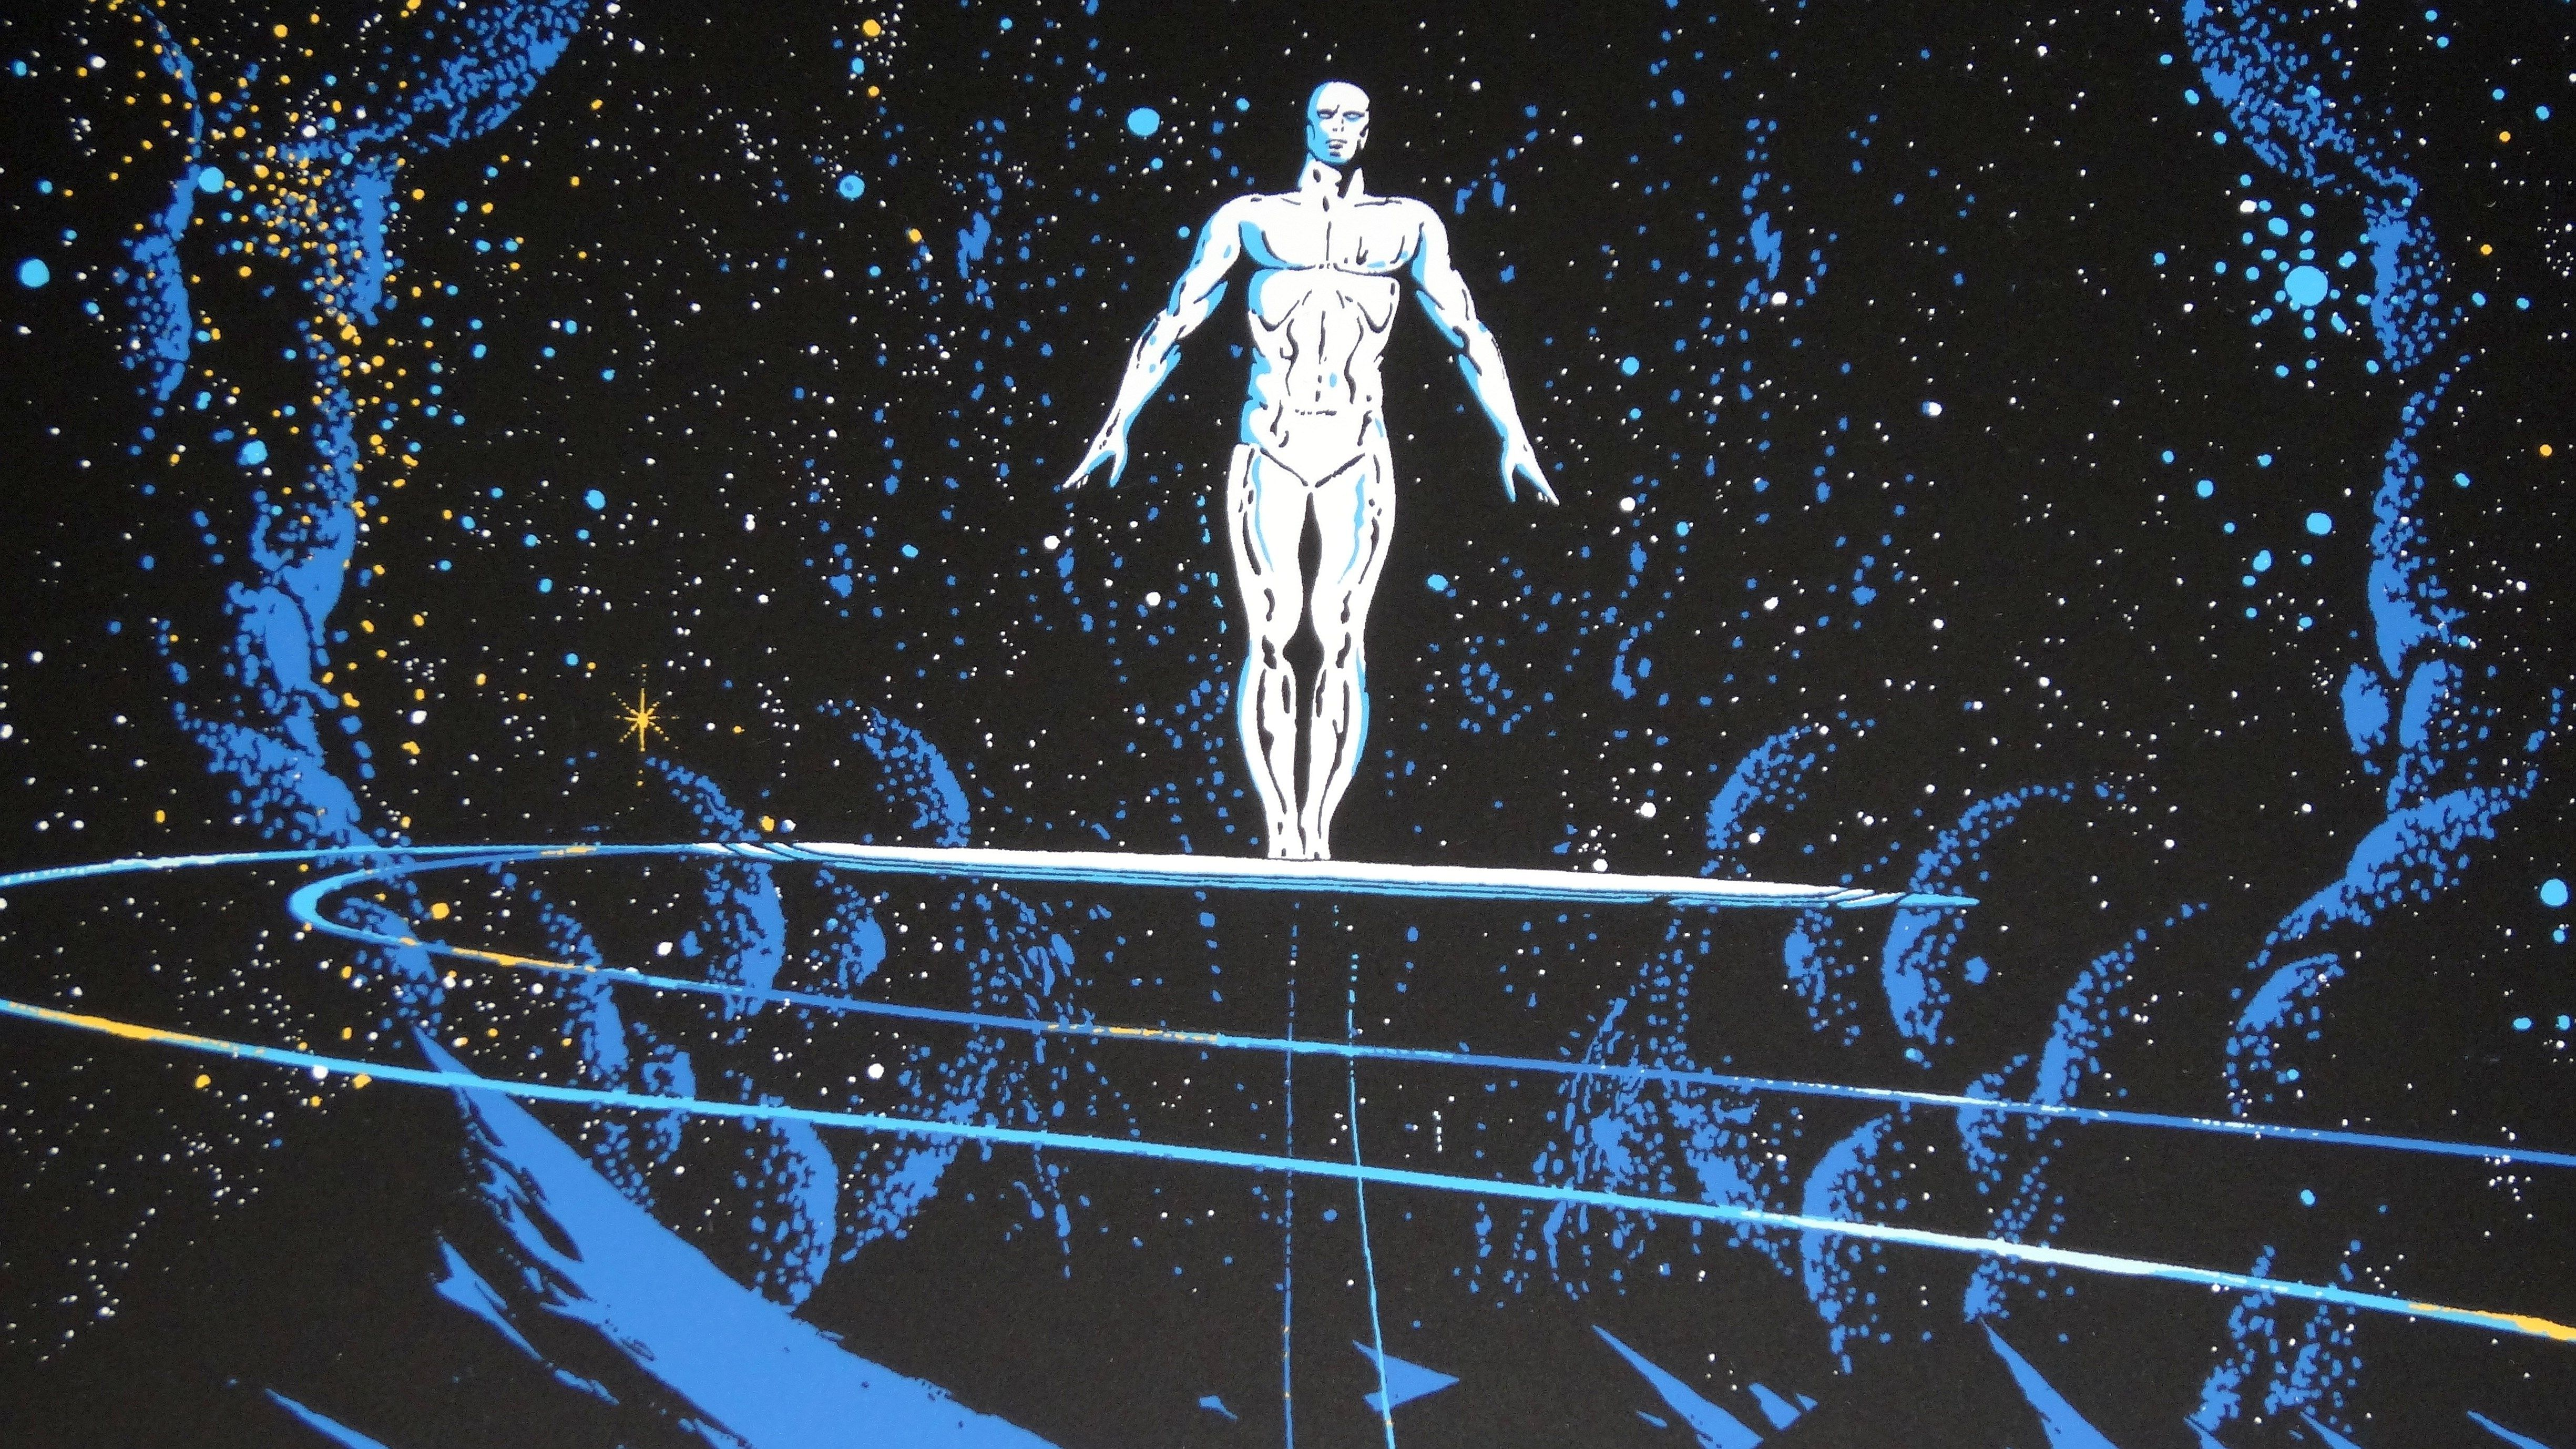 4900x2756 HQ RES Silver Surfer